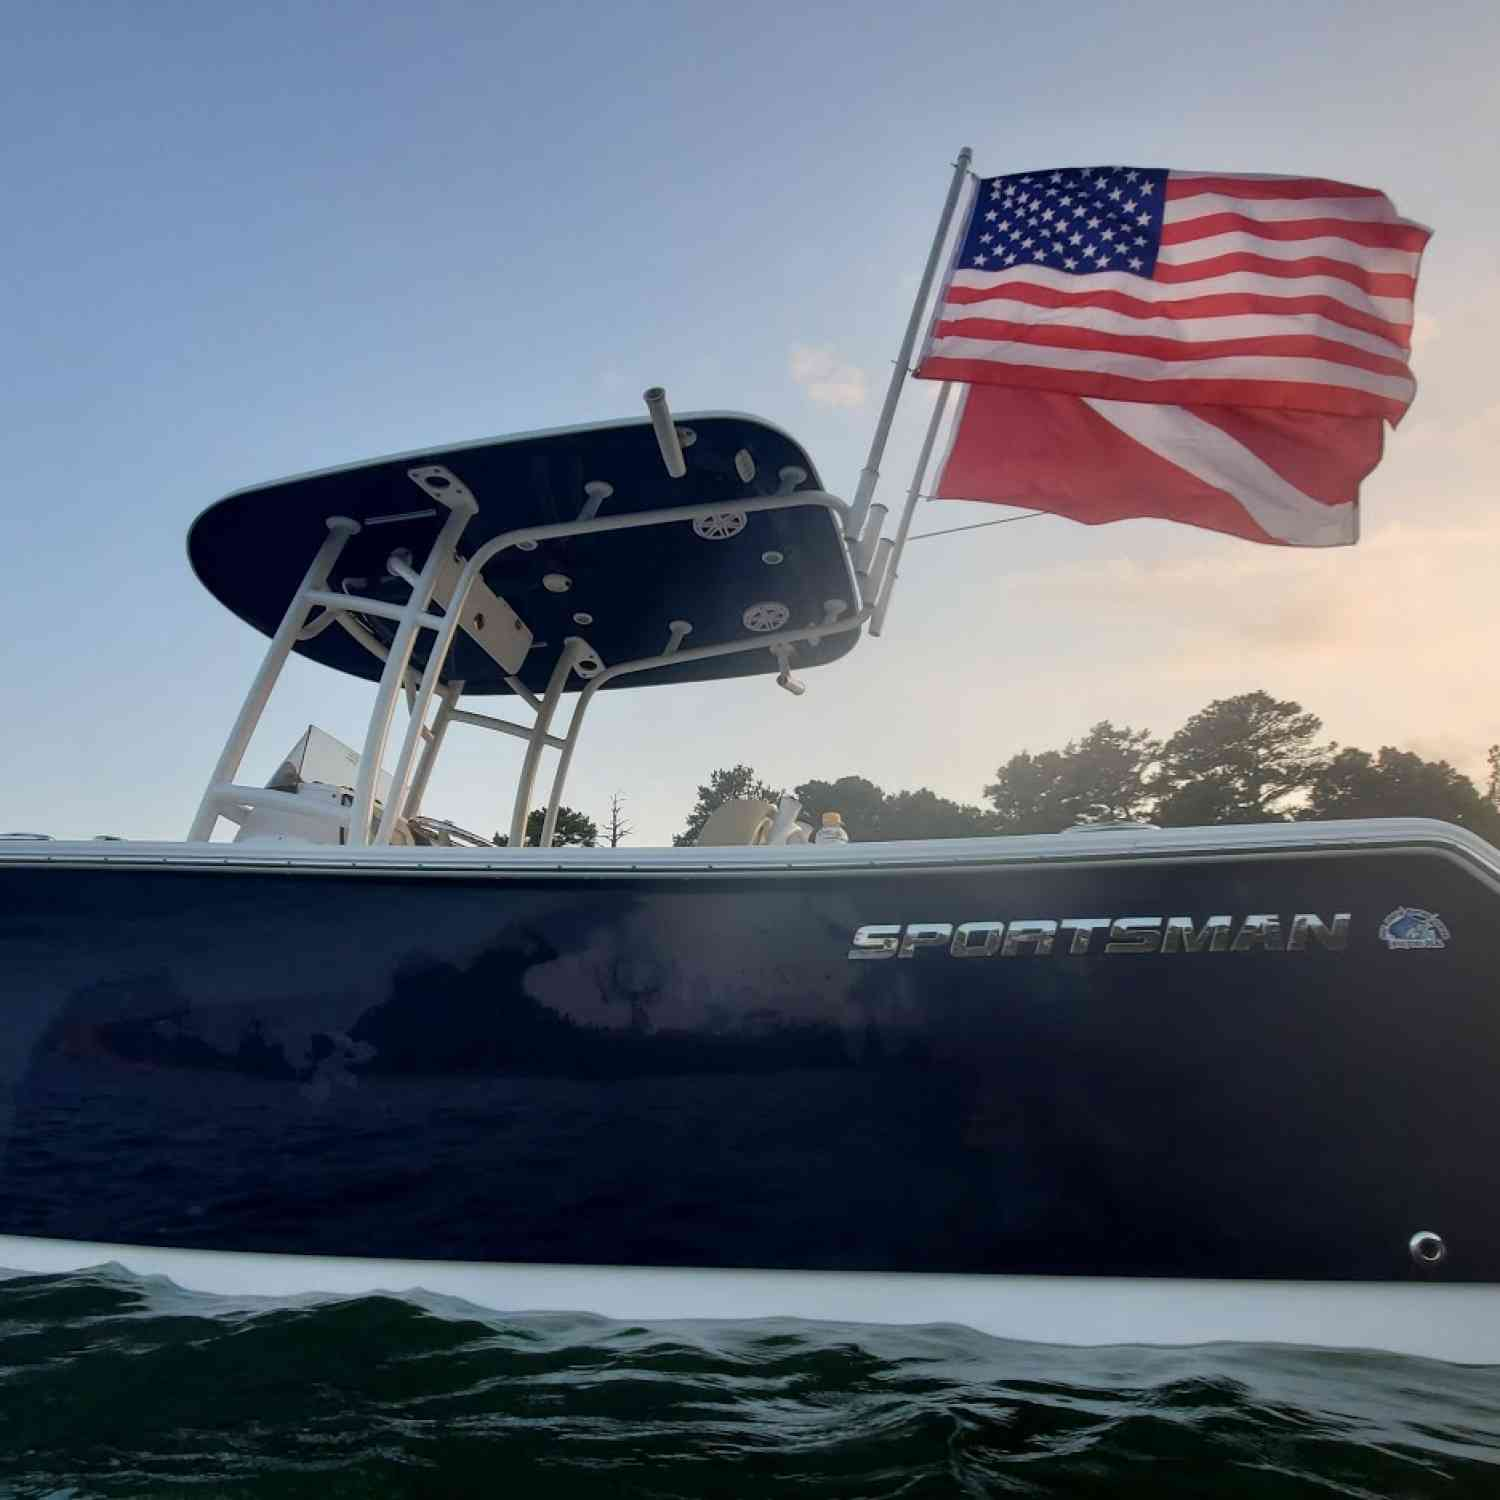 Title: Sportsman Dive Boat - On board their Sportsman Open 232 Center Console - Location: Greers Ferry Lake, AR. Participating in the Photo Contest #SportsmanAugust2020